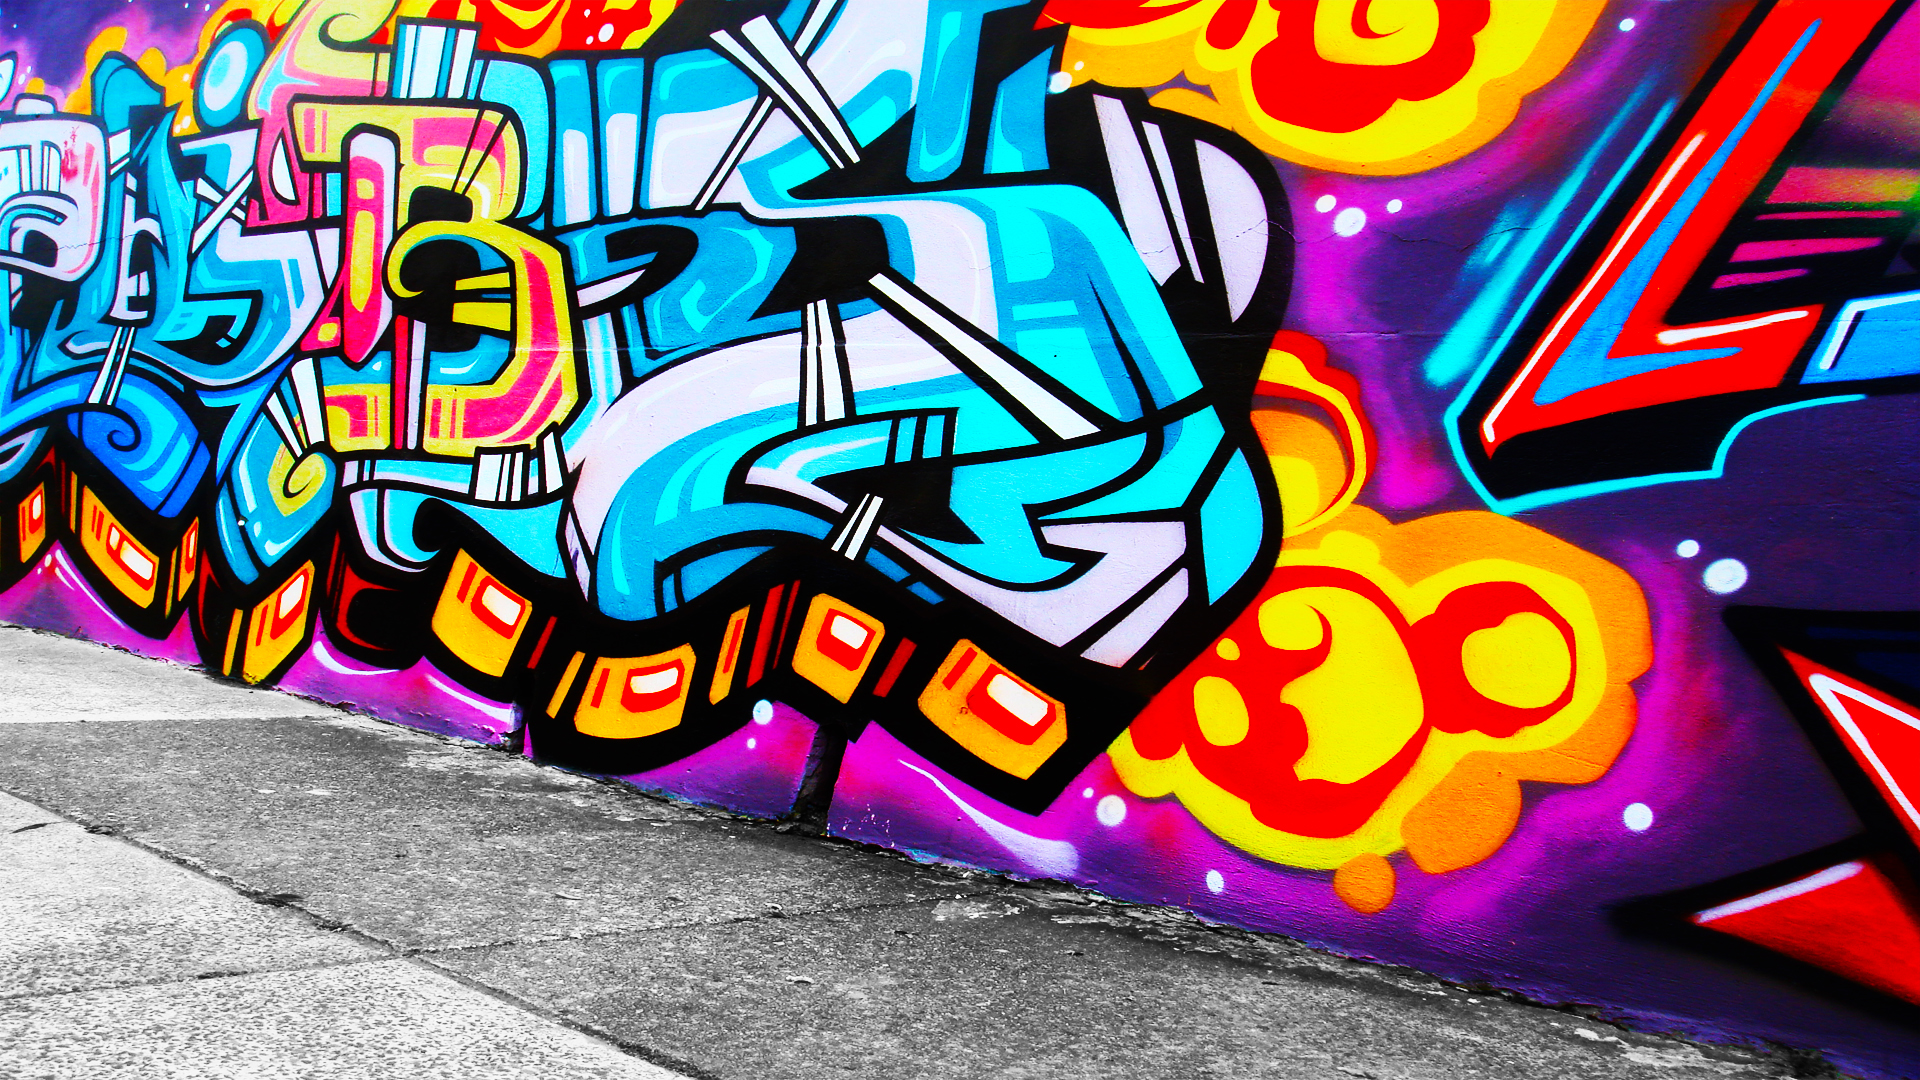 Cool Graffiti   Wallpapers Images Pictures Pics Wallpapers Wall 1920x1080